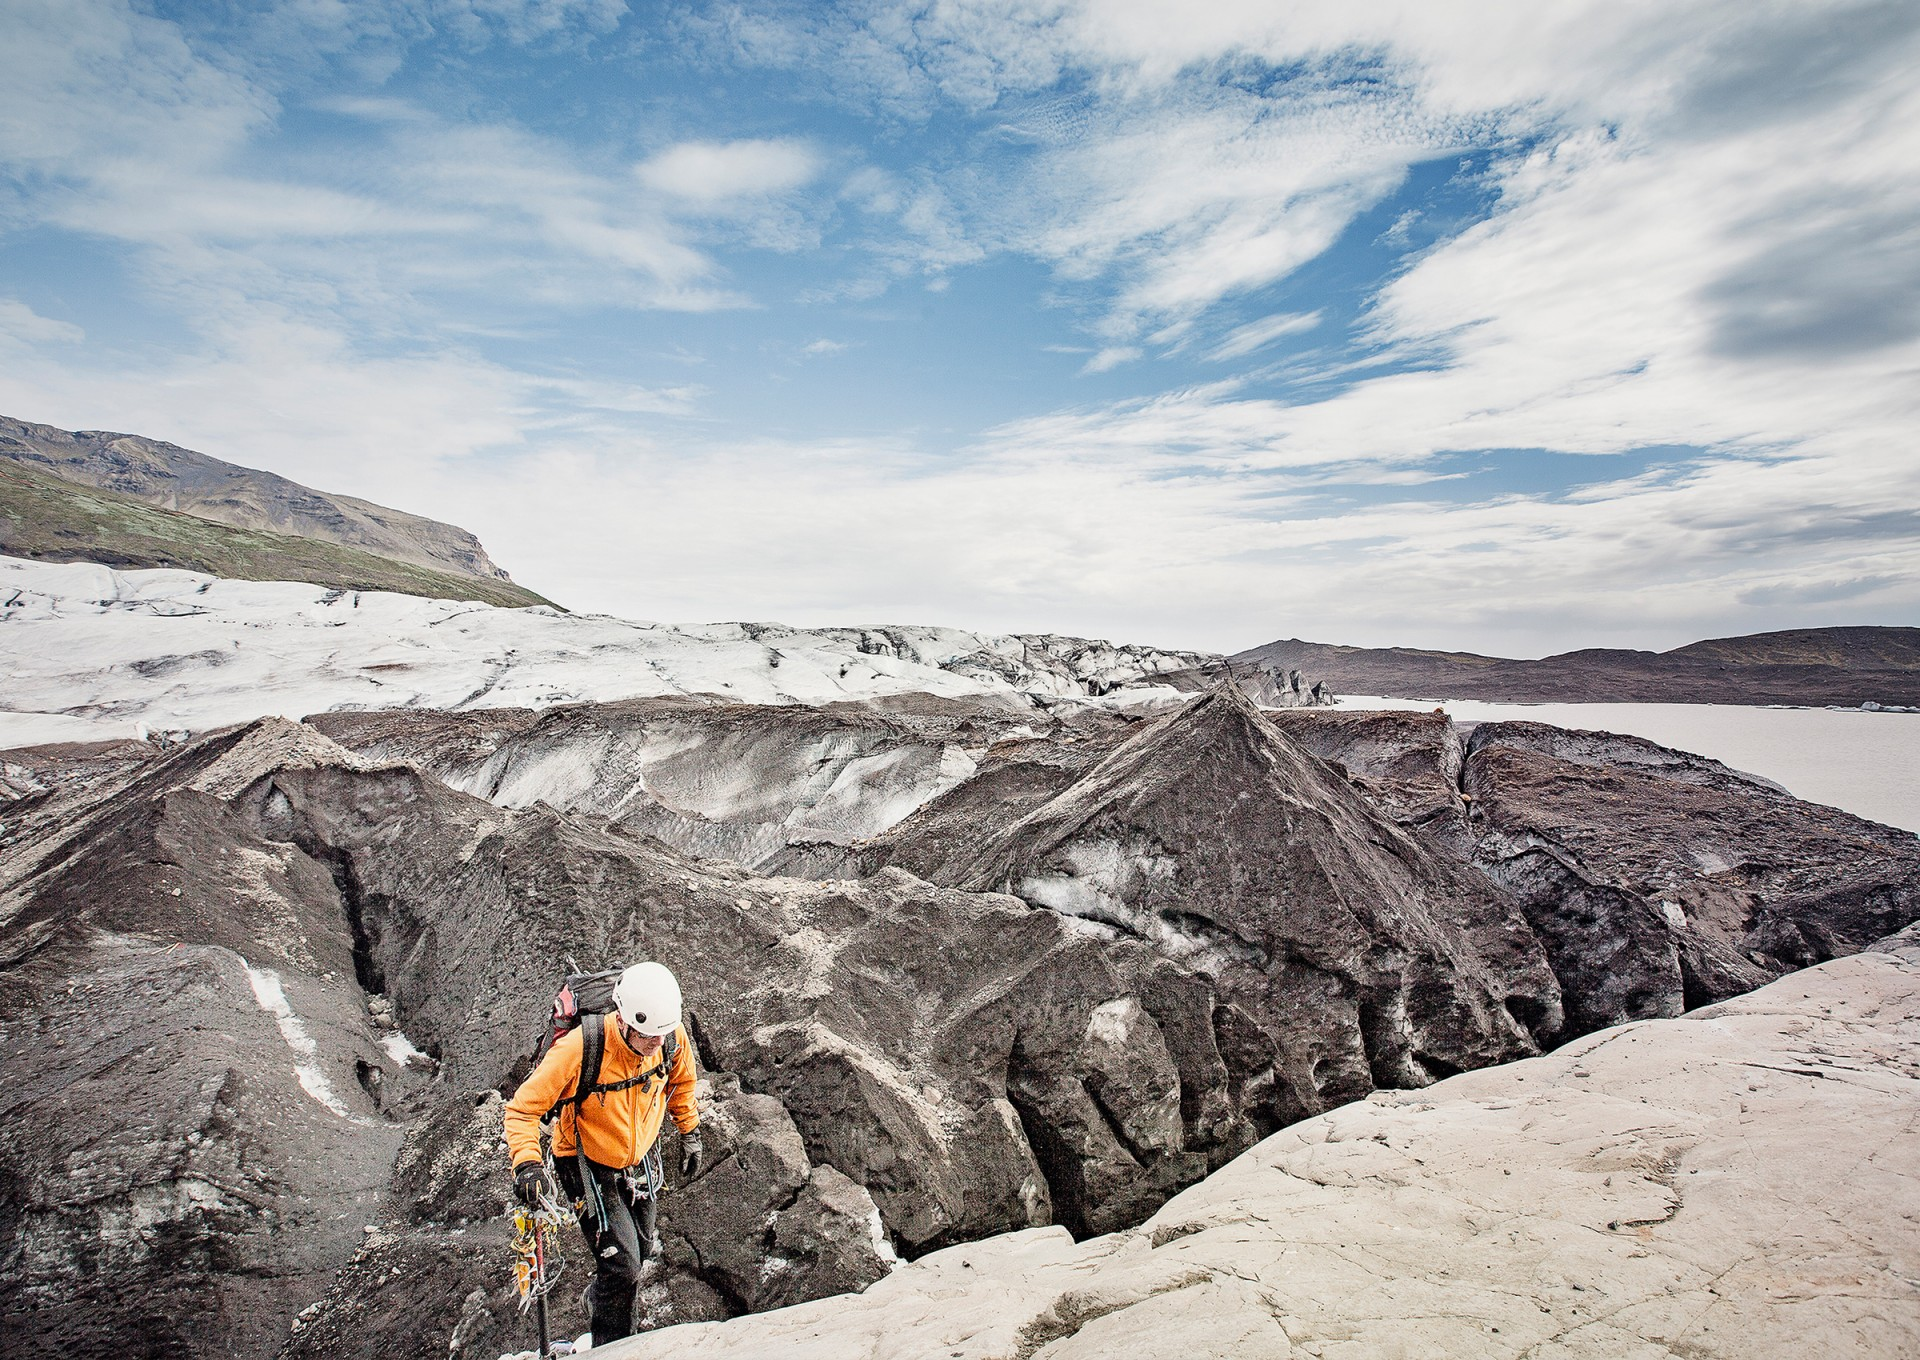 MIKA MIKA PHOTOGRAPHY ACTION & TRAVEL – On the Glacier / Iceland